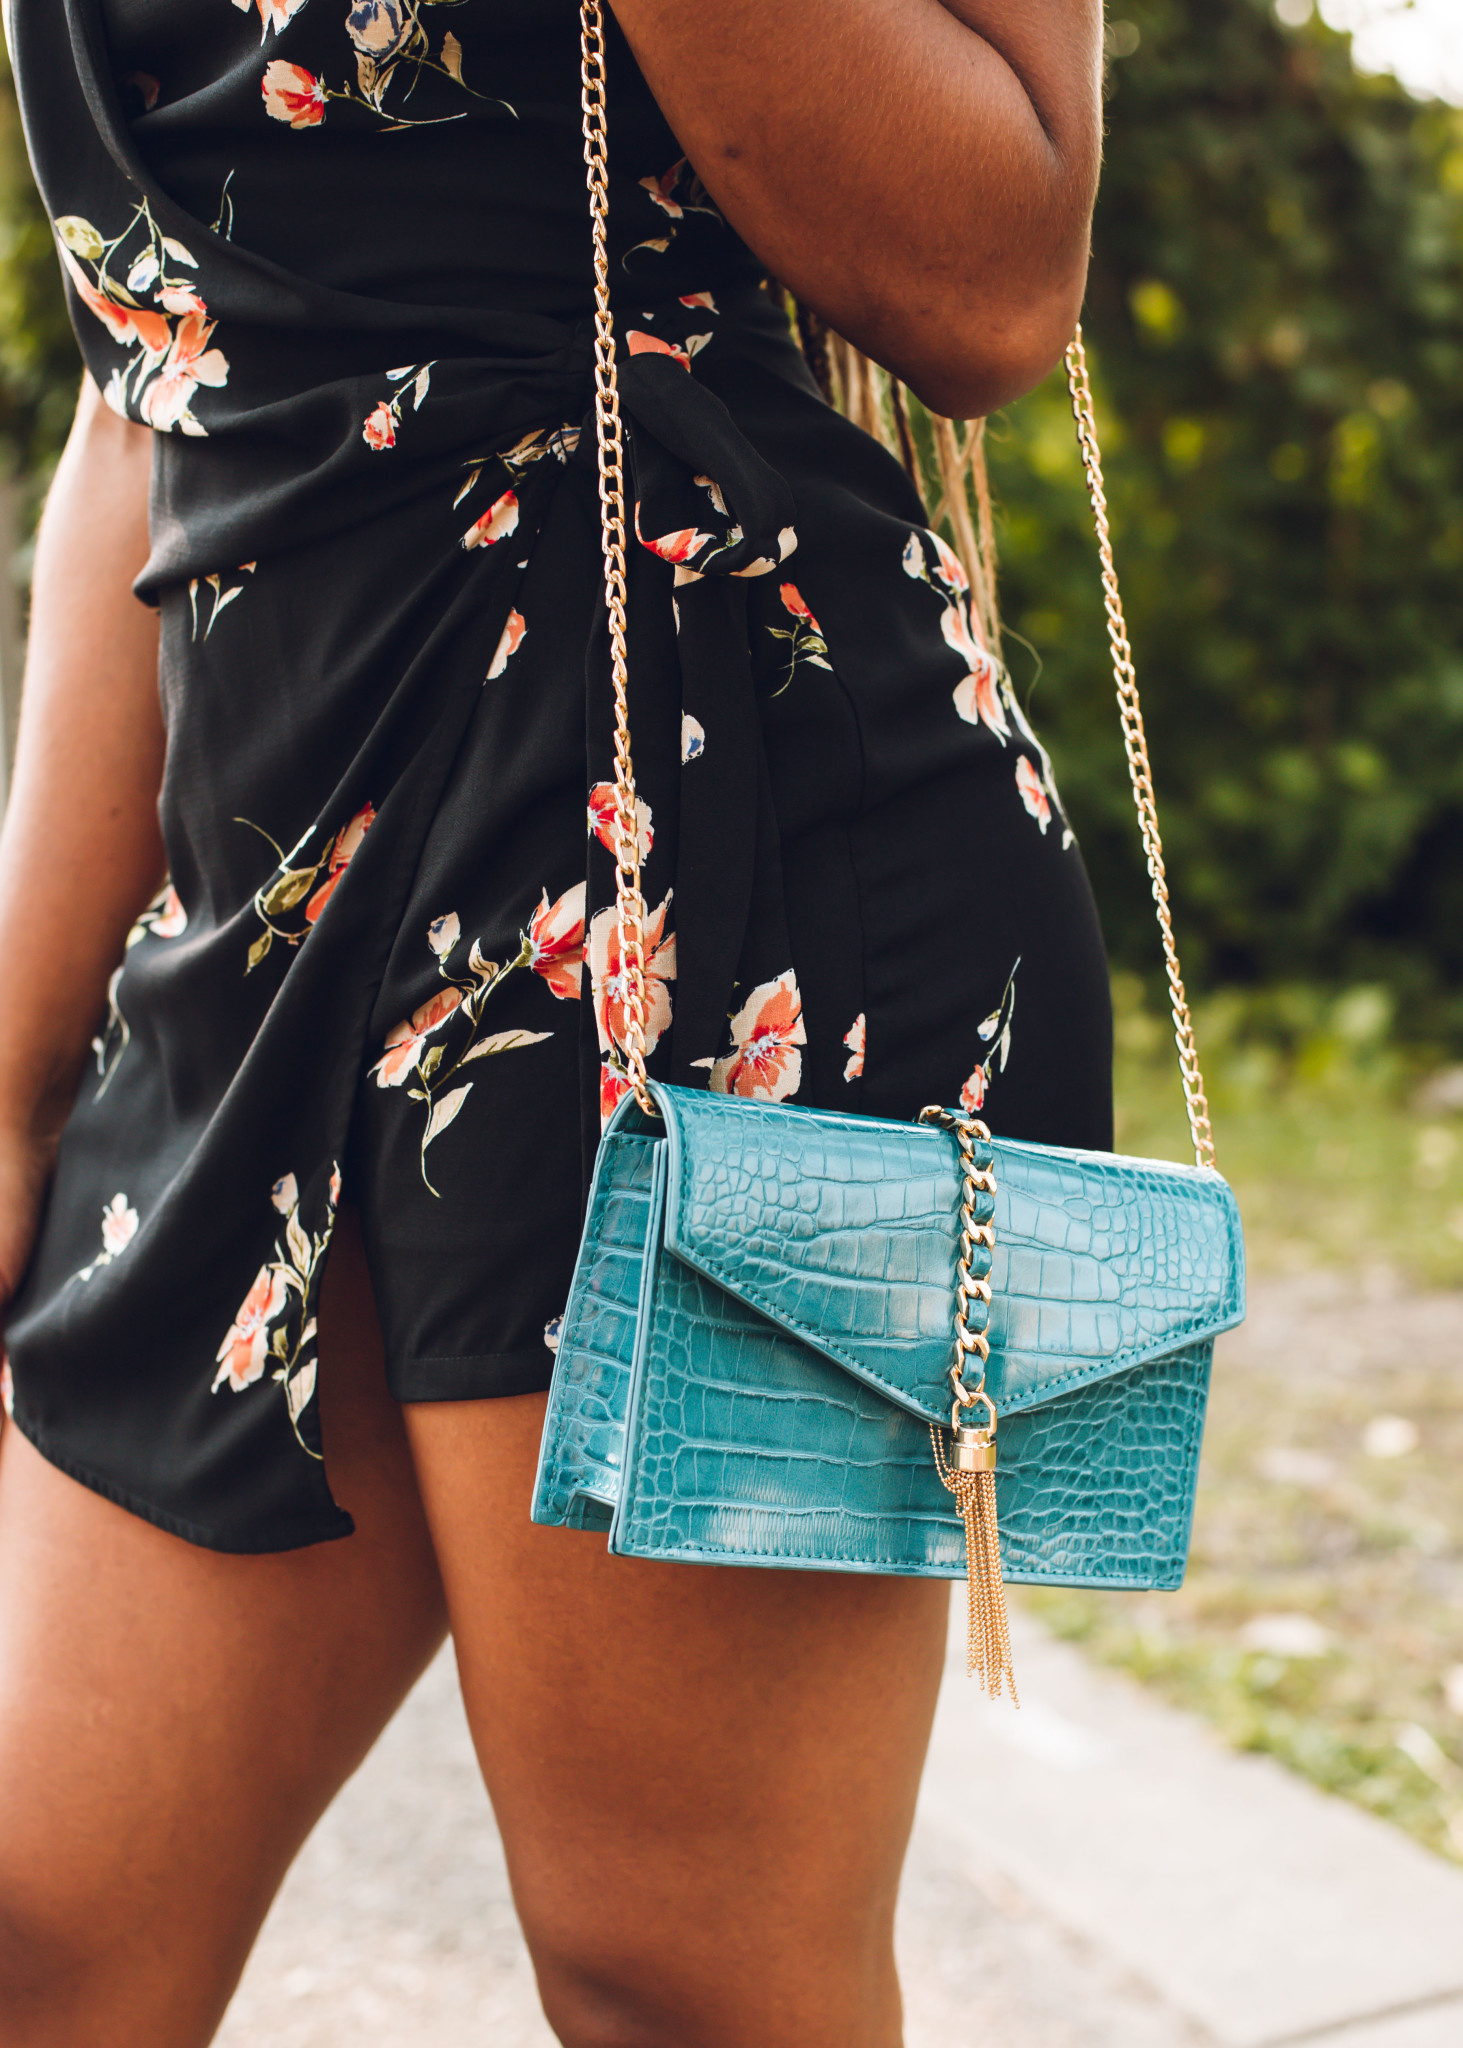 SWEET TALK TEAL CROSSBODY